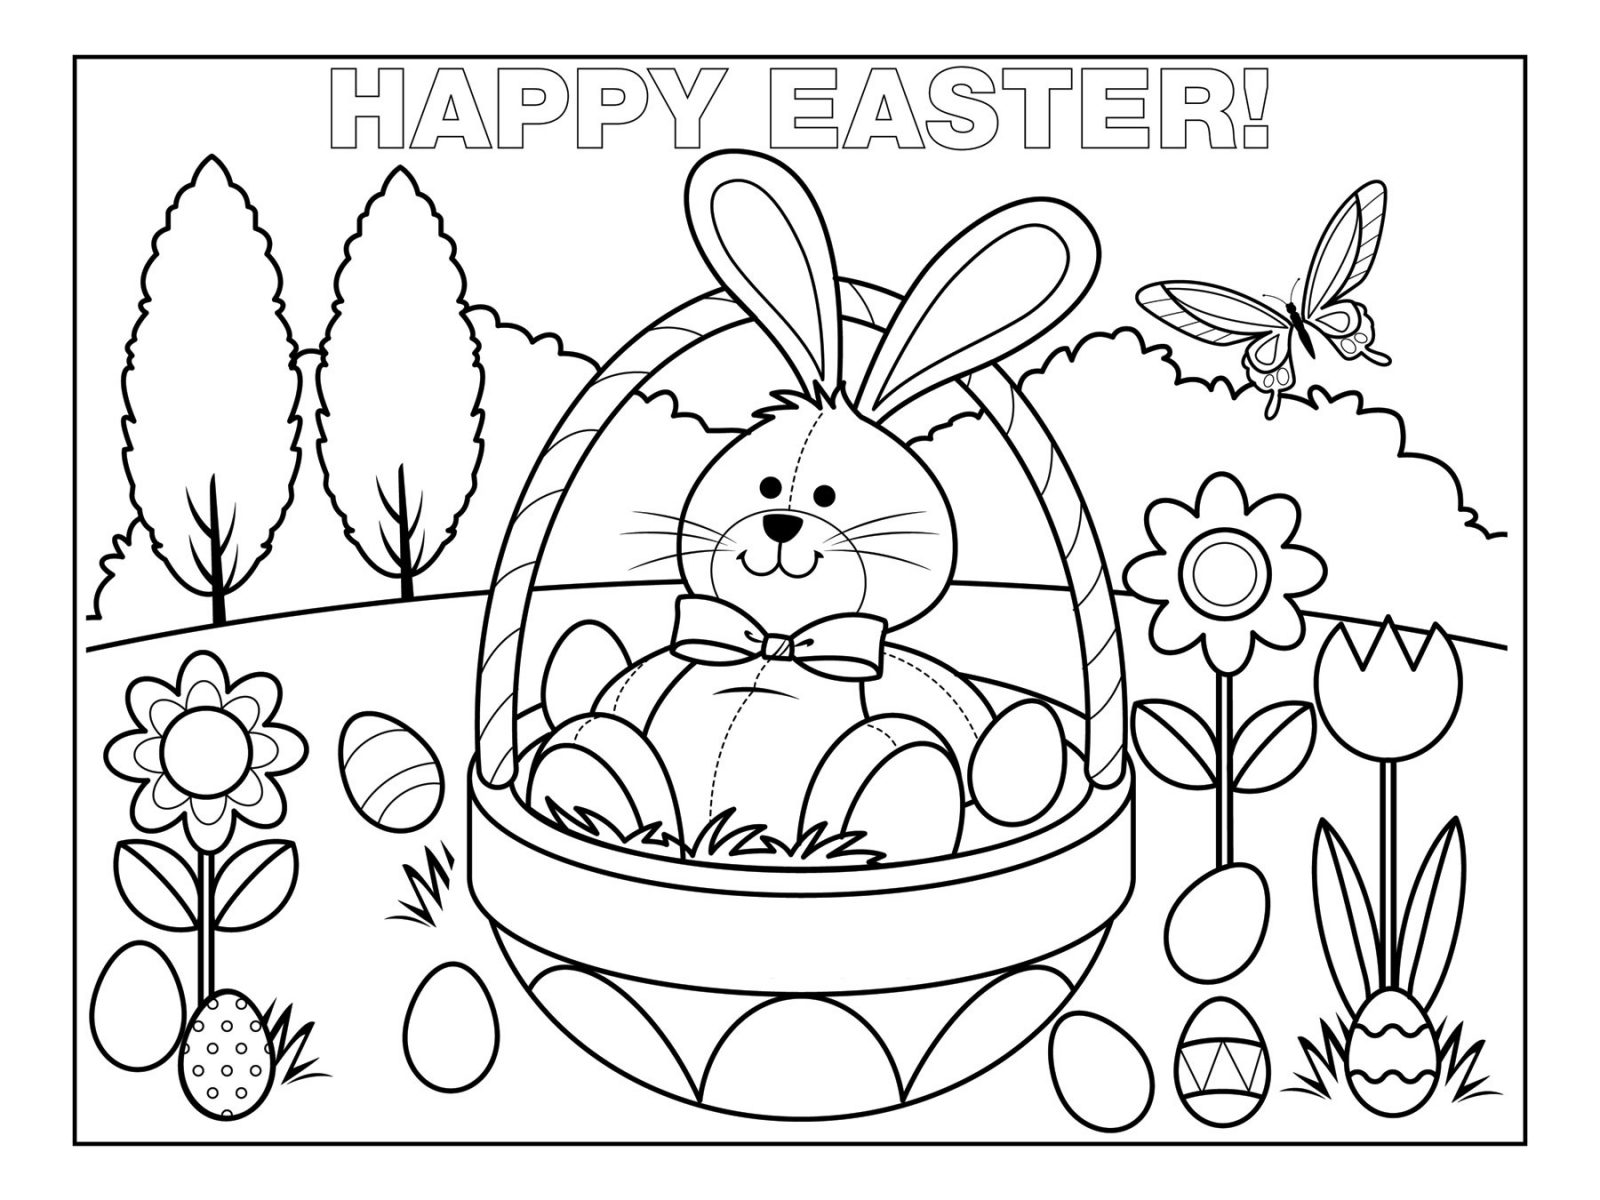 1600x1200 Dorable Easter Egg Coloring Pages Free For Kids Component